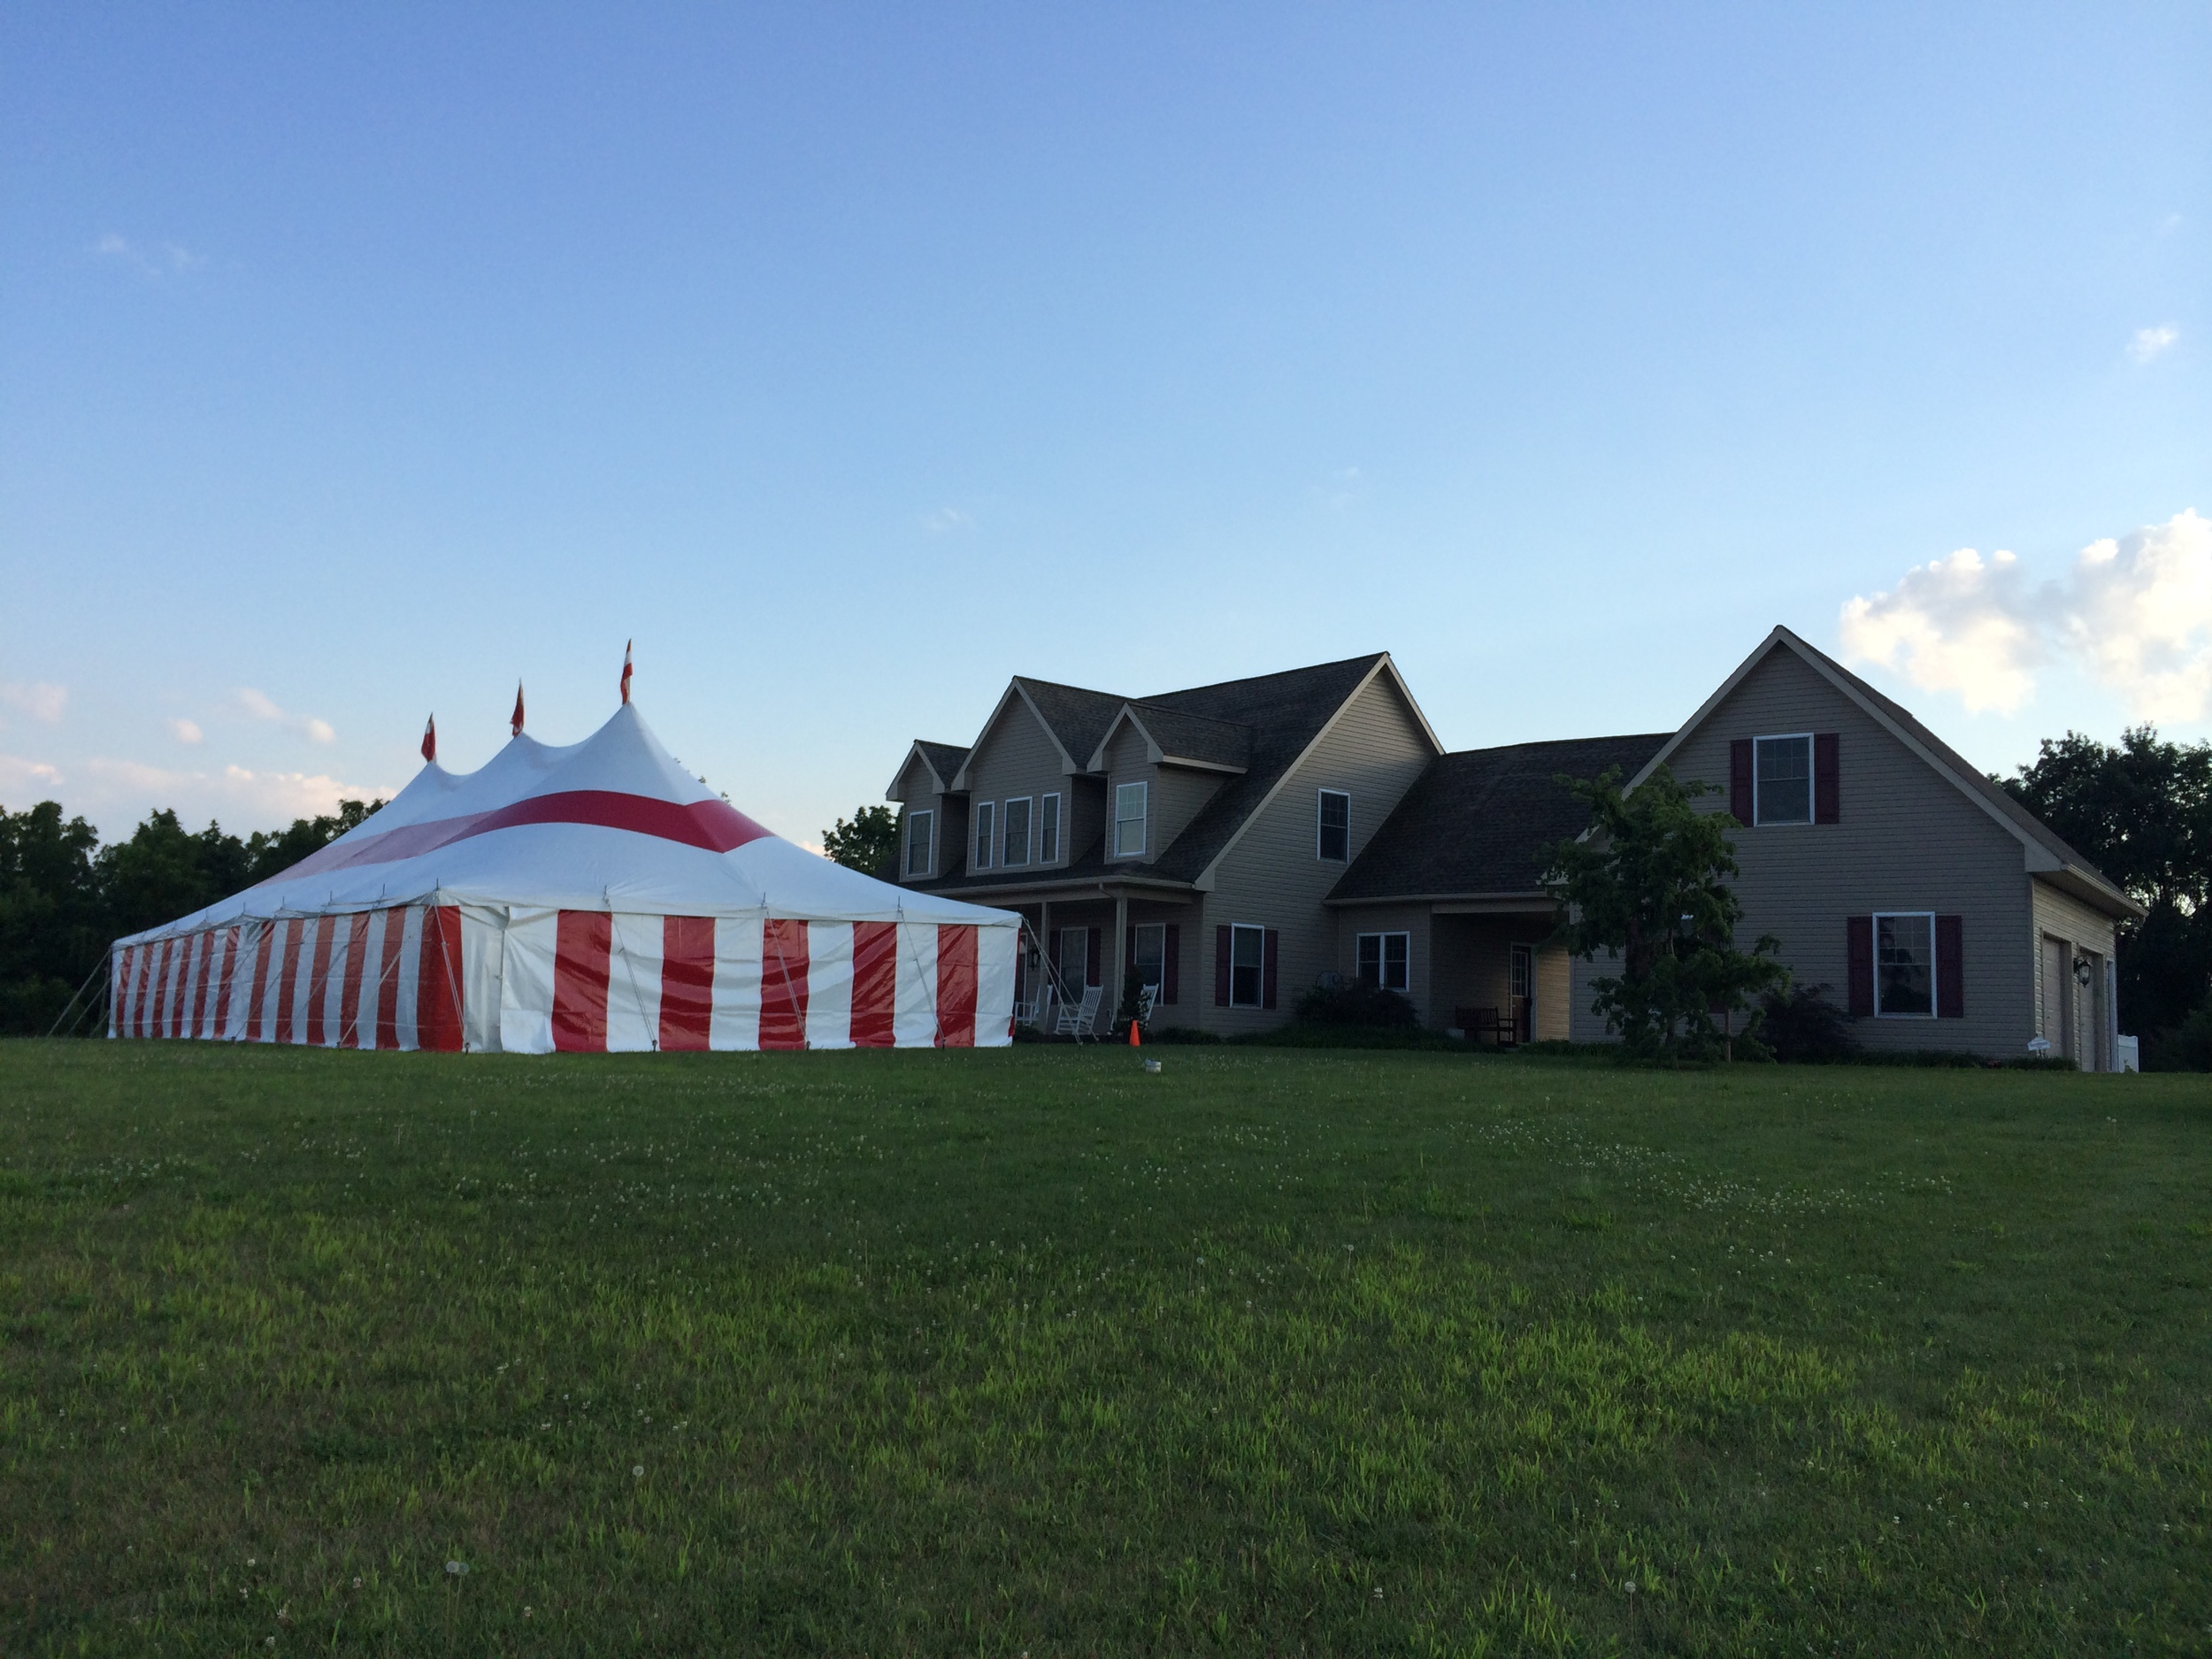 Tent with matching red and white striped sidewalls